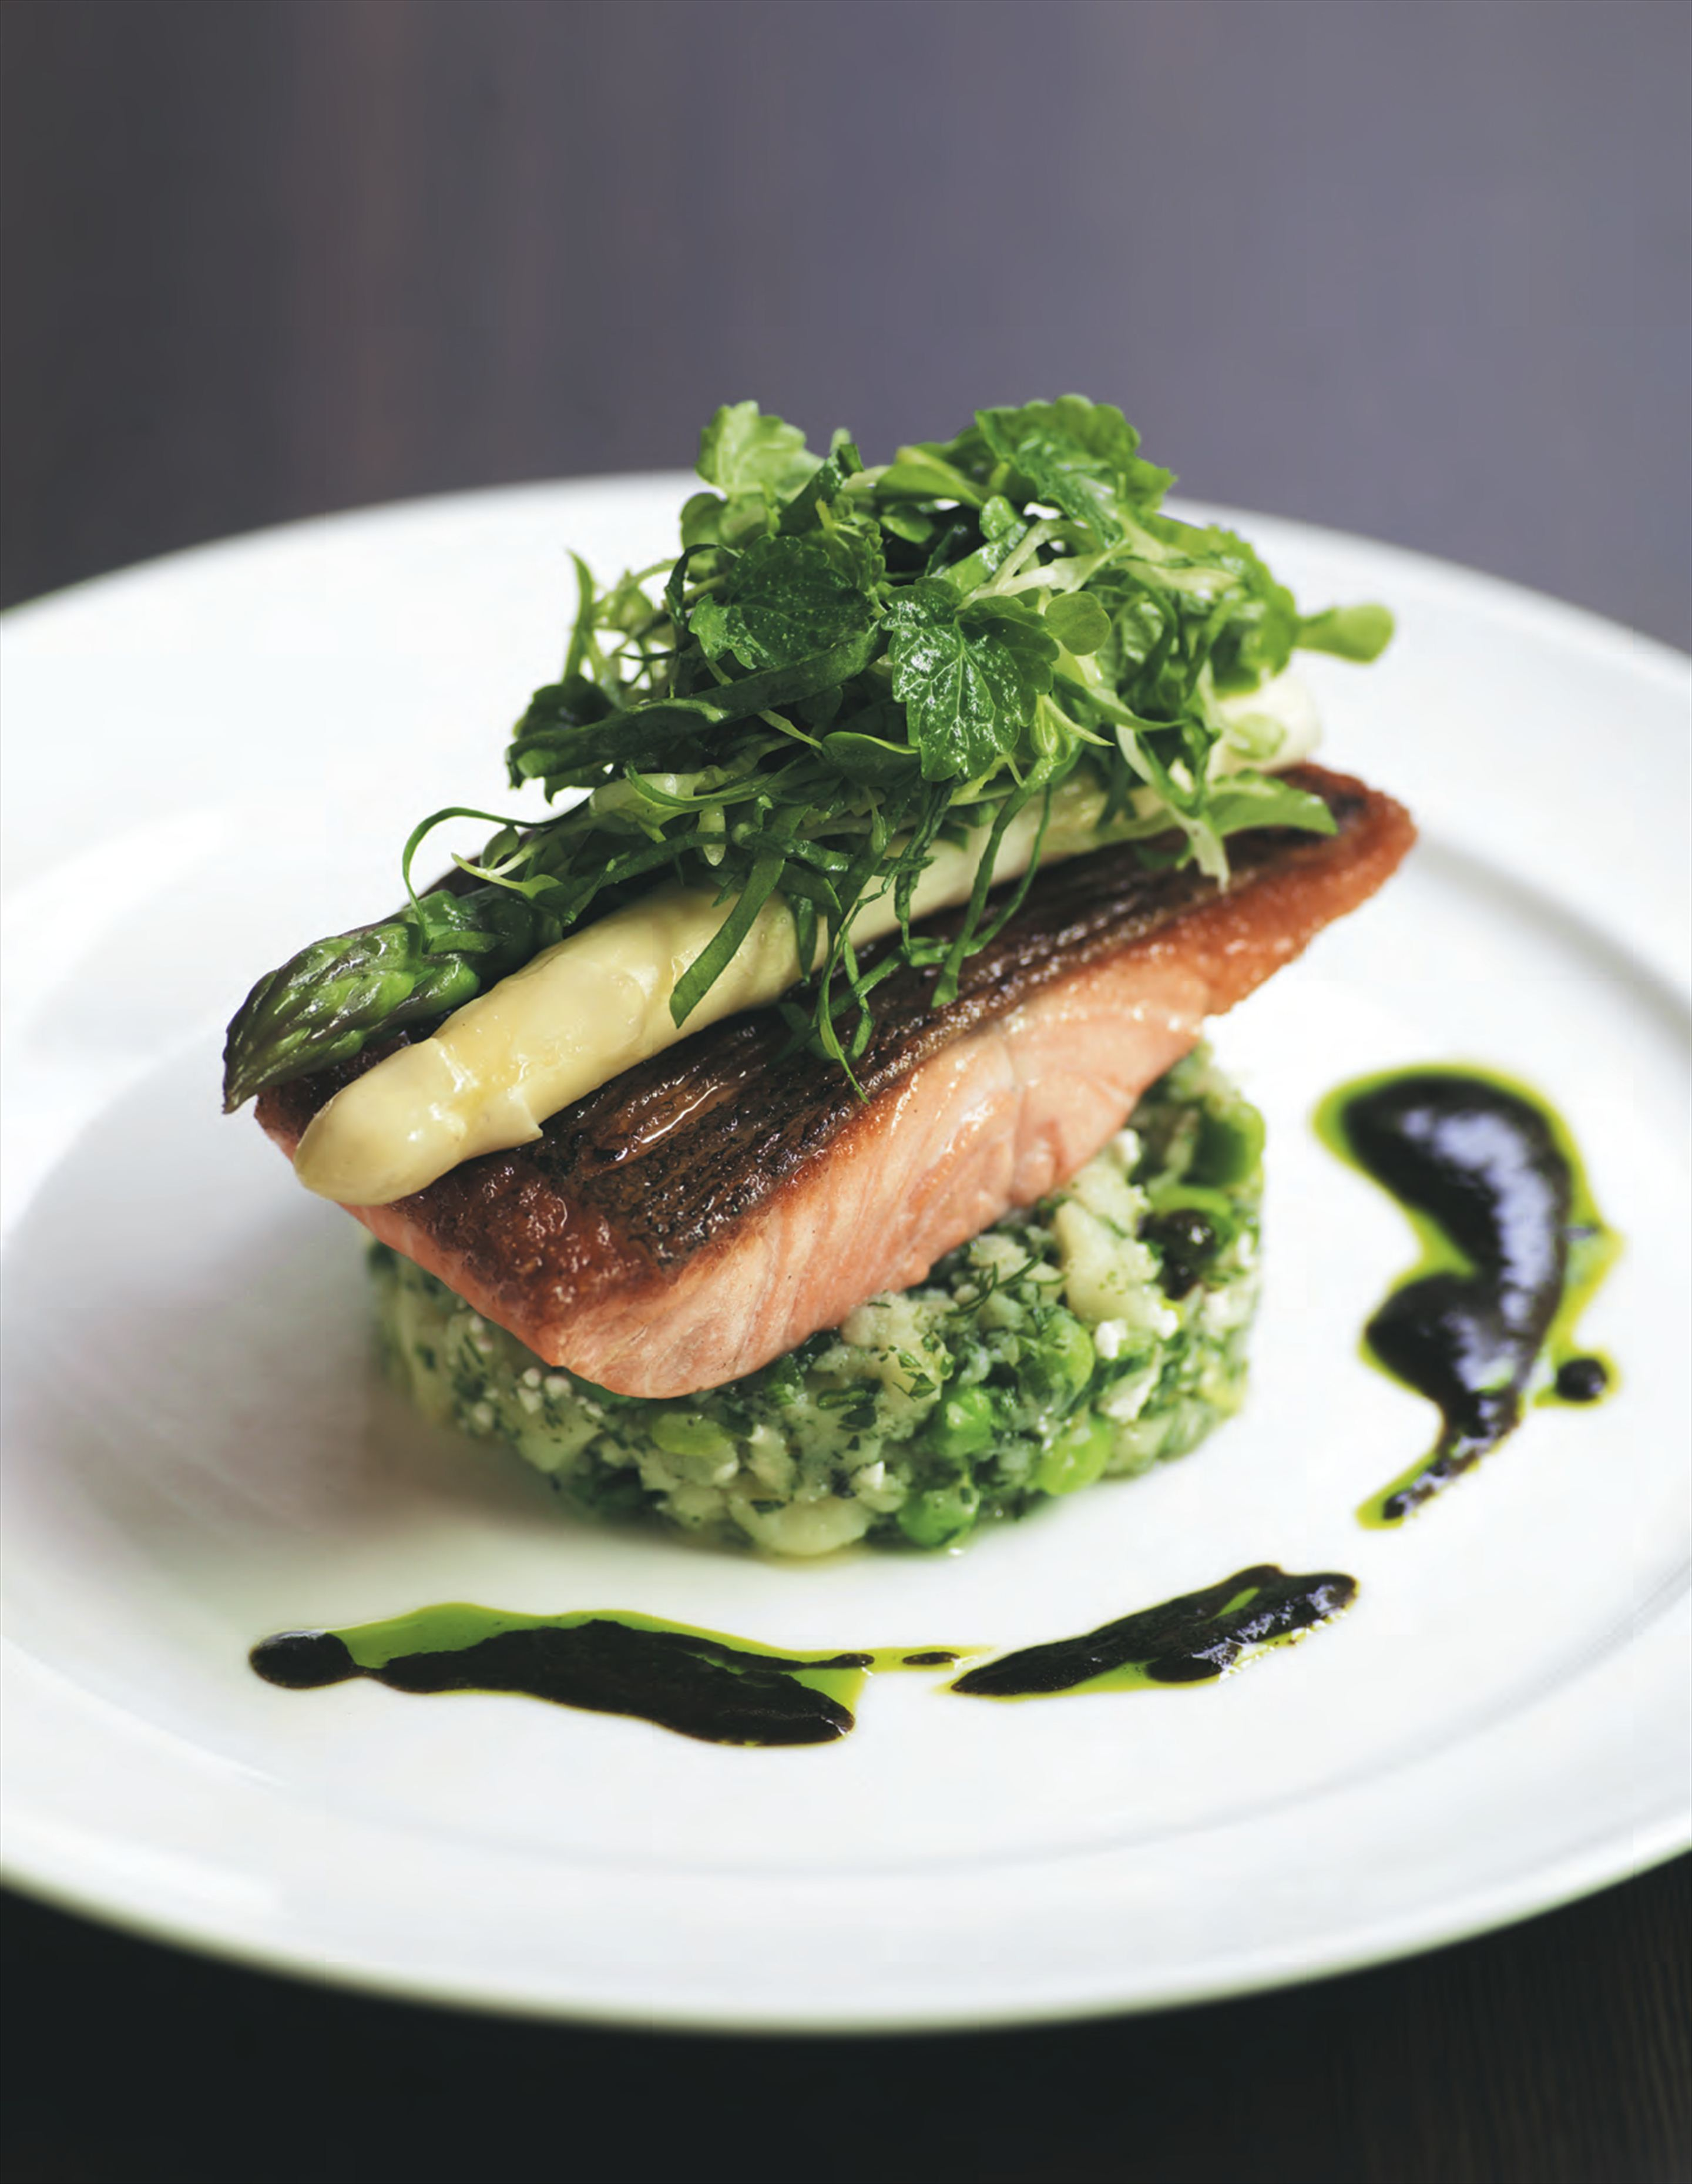 Ocean trout with crushed potatoes primavera